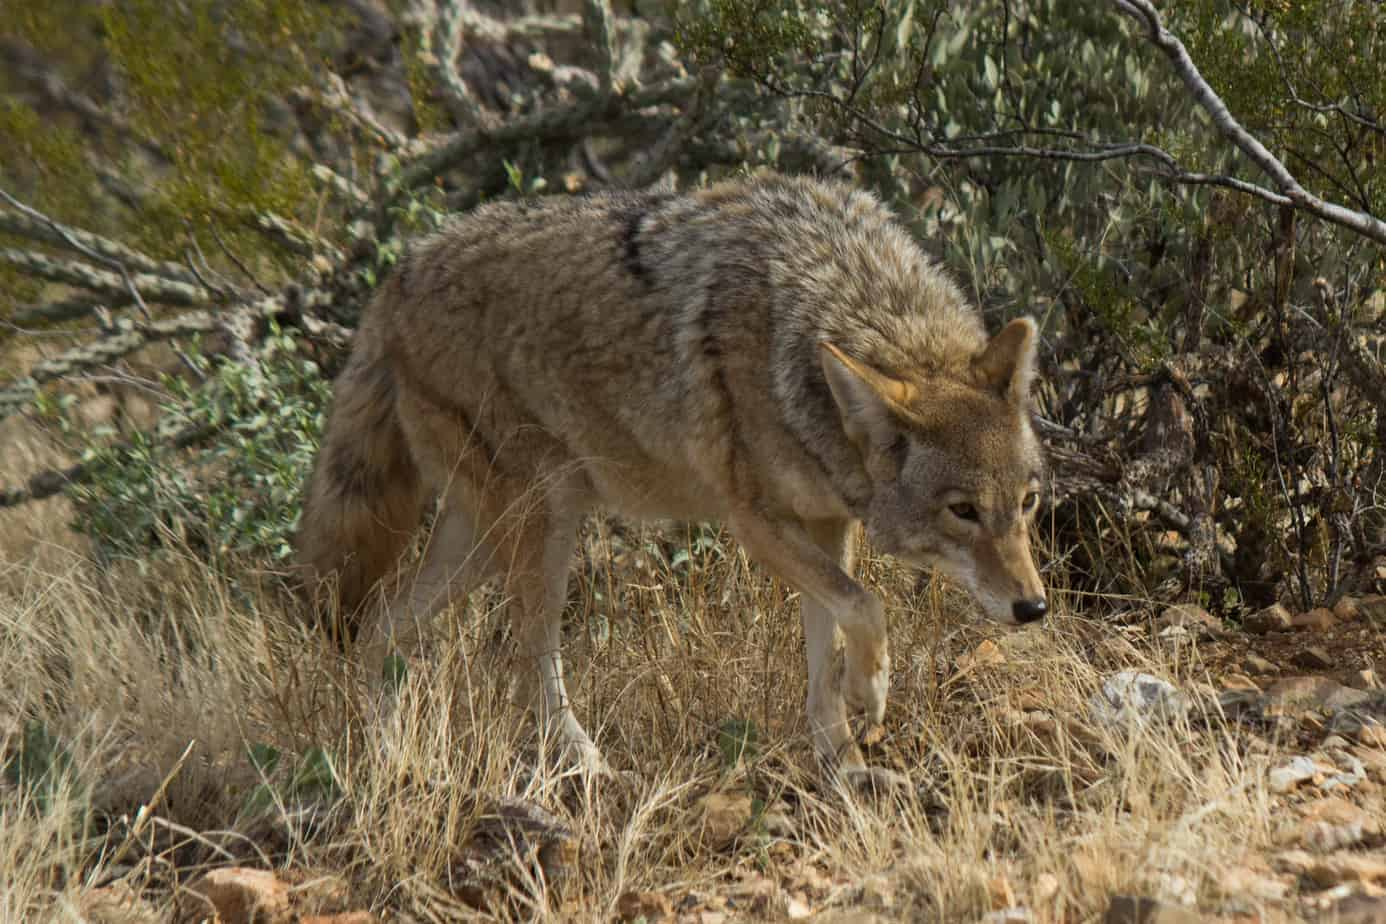 Coyote @ Sonoran Desert, Arizona